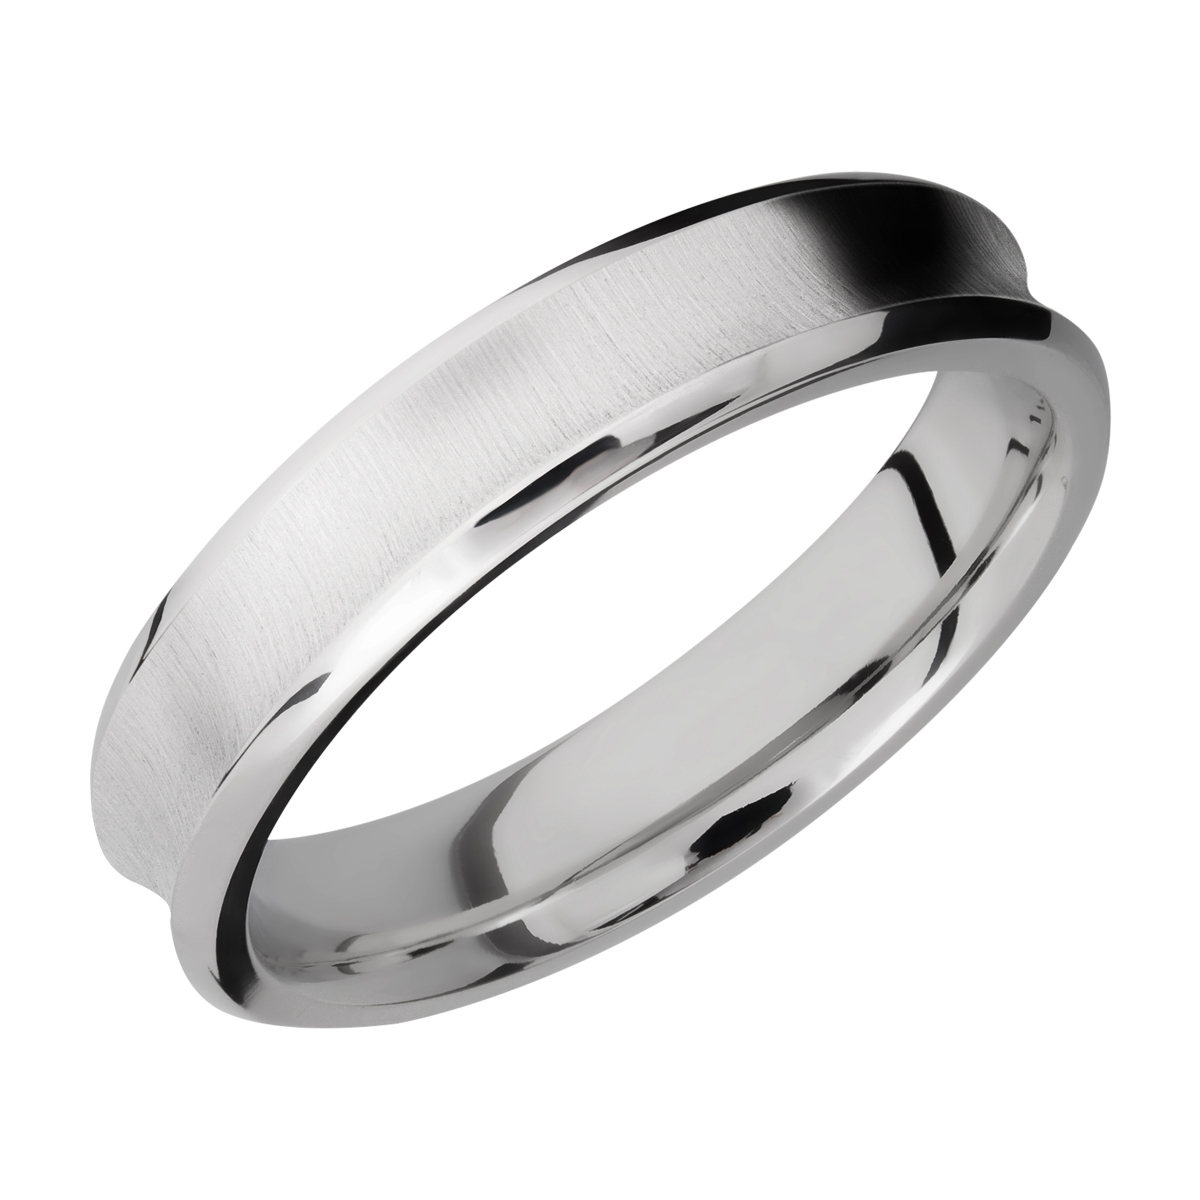 Lashbrook CC5CB Cobalt Chrome Wedding Ring or Band